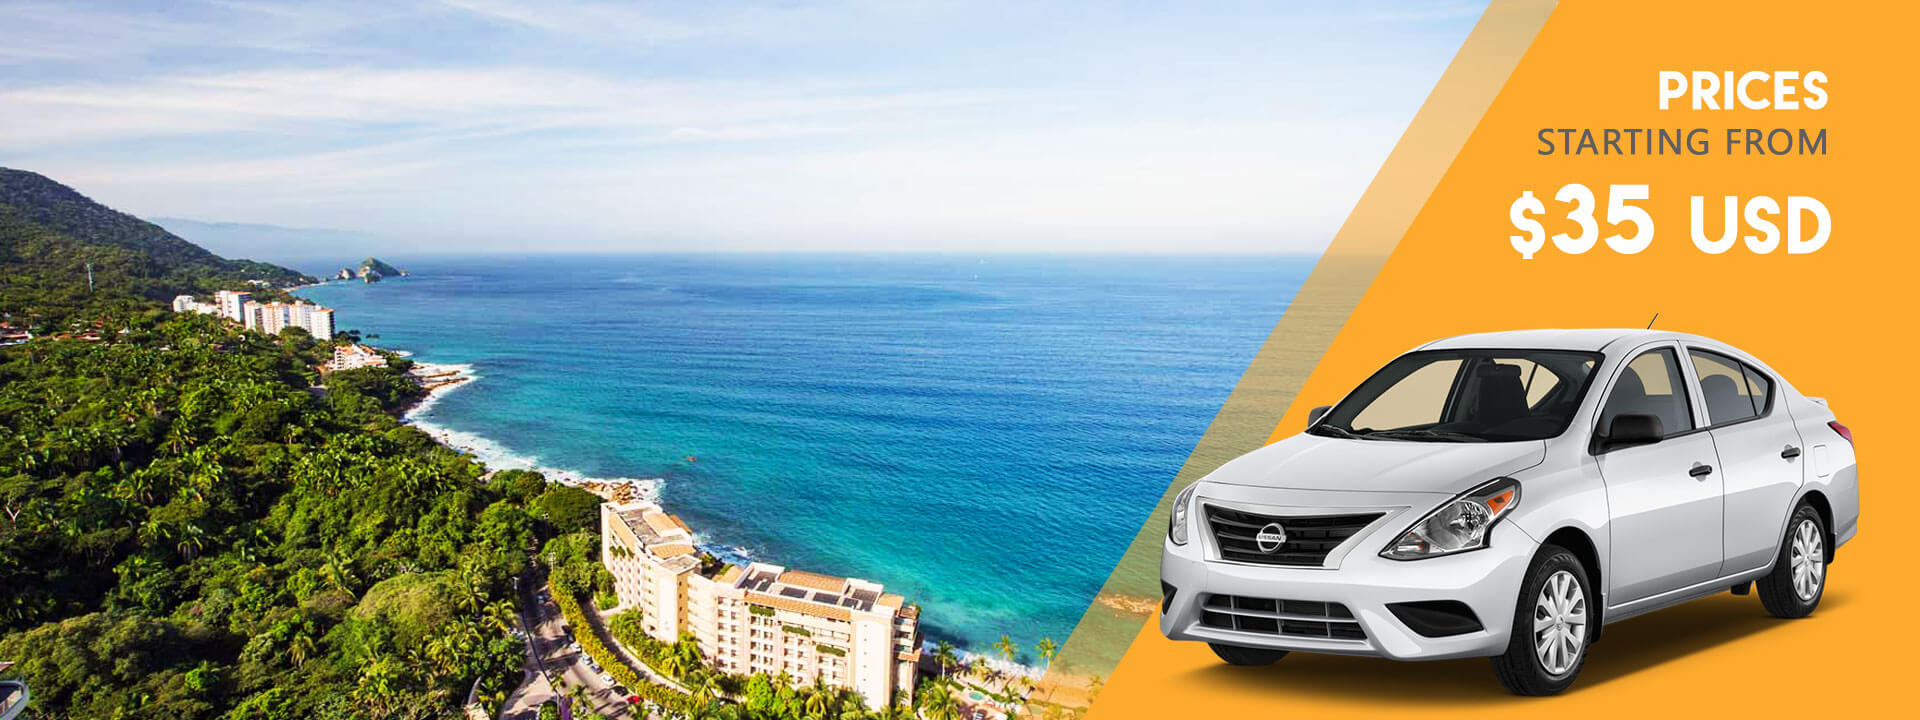 Dollar Car Rental Puerto Rico: Puerto Vallarta Airport Transportation